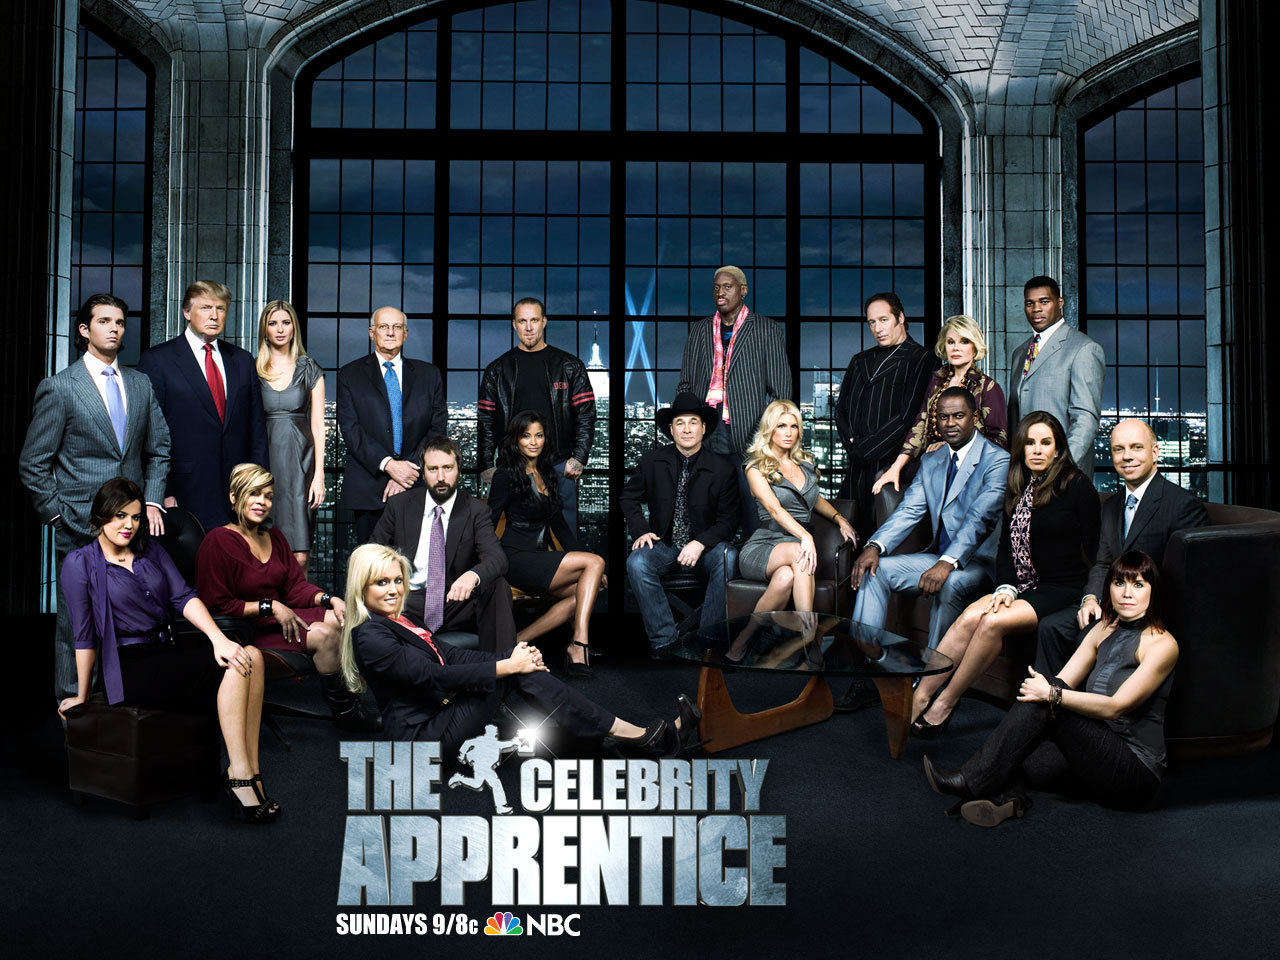 The Celebrity Apprentice Season 15 Episode 3 - TinklePad